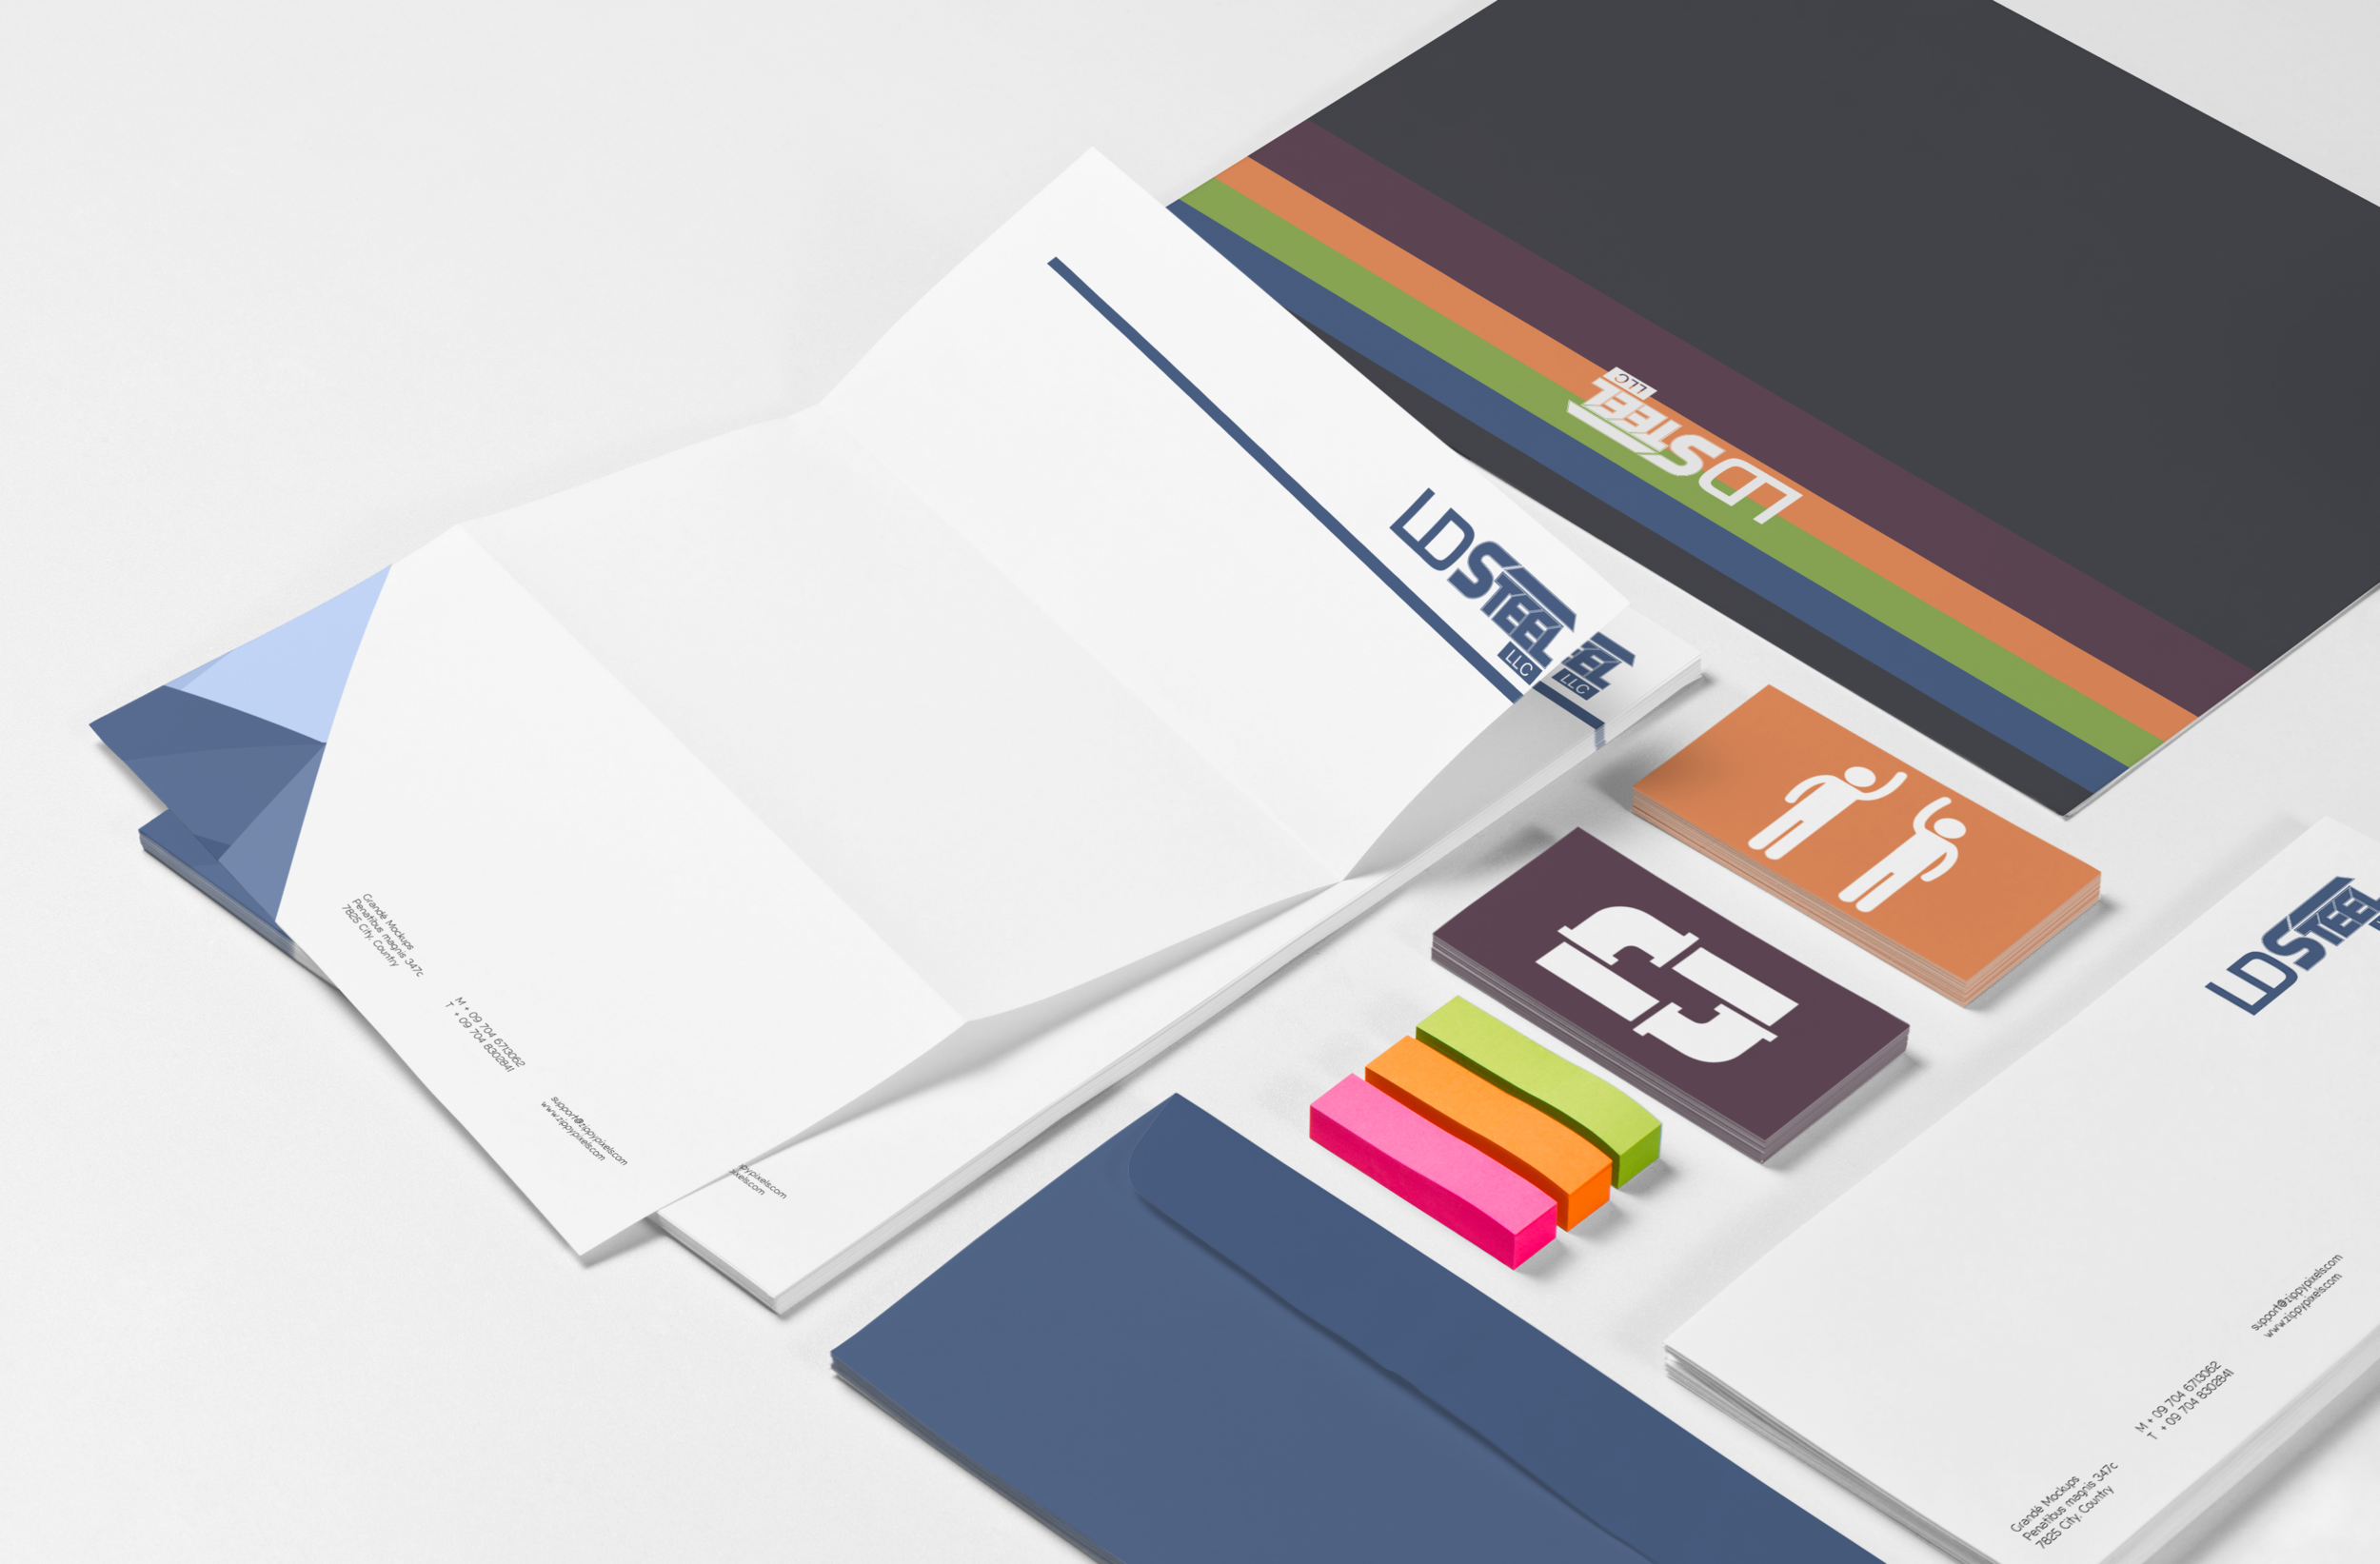 stationary-mockup-3456.png